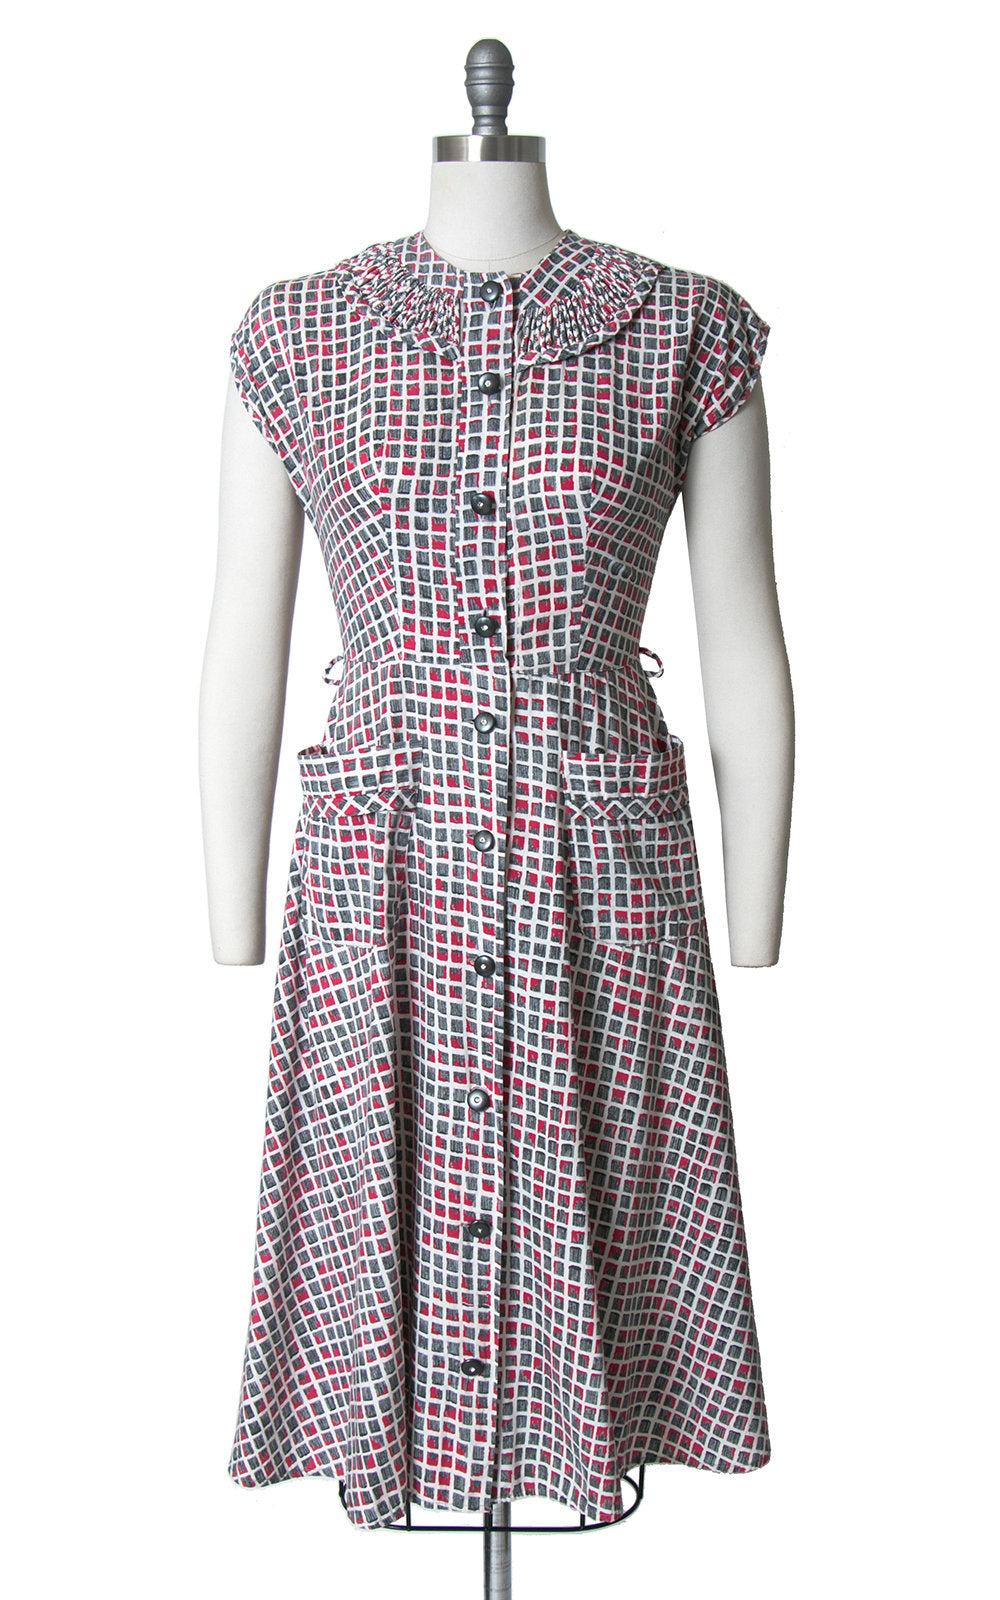 Vintage 1940s 1950s Dress | 40s 50s Printed Cotton Shirt Dress Red Grey Shirtwaist Full Skirt Day Dress (small)